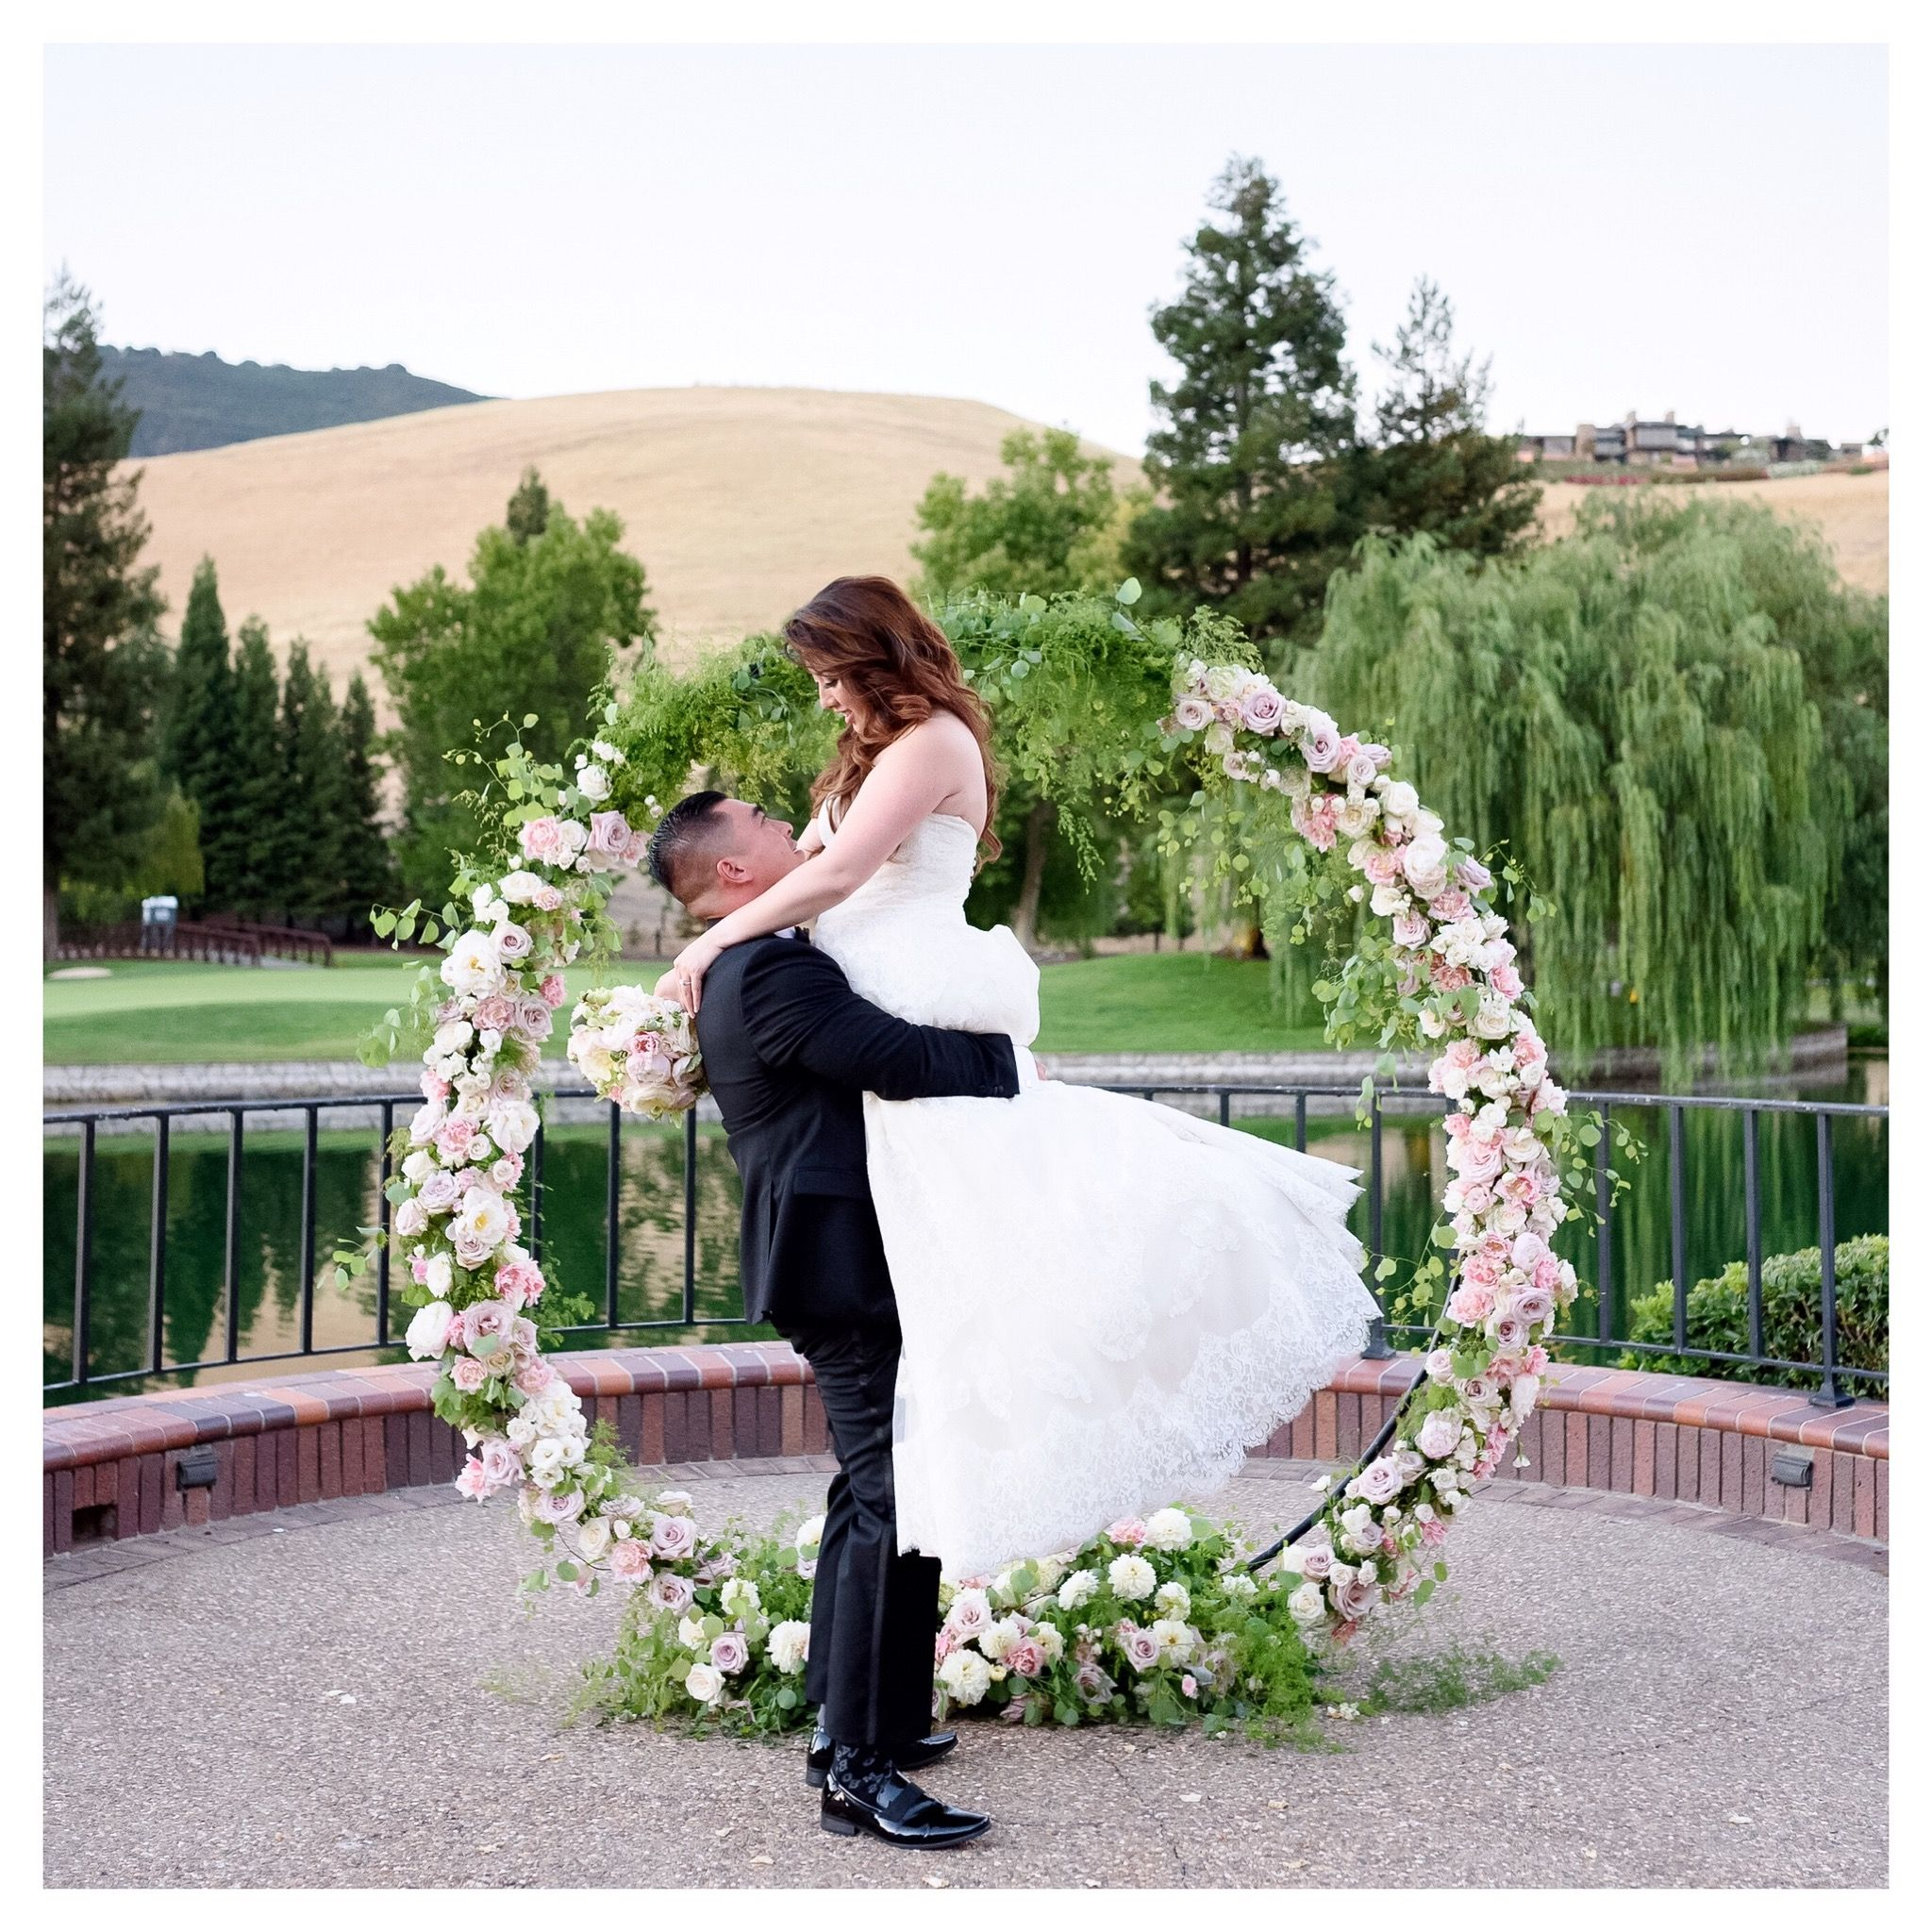 Wedding Ceremony: Circle Of Love Round Arch + Lake Backdrop Made The